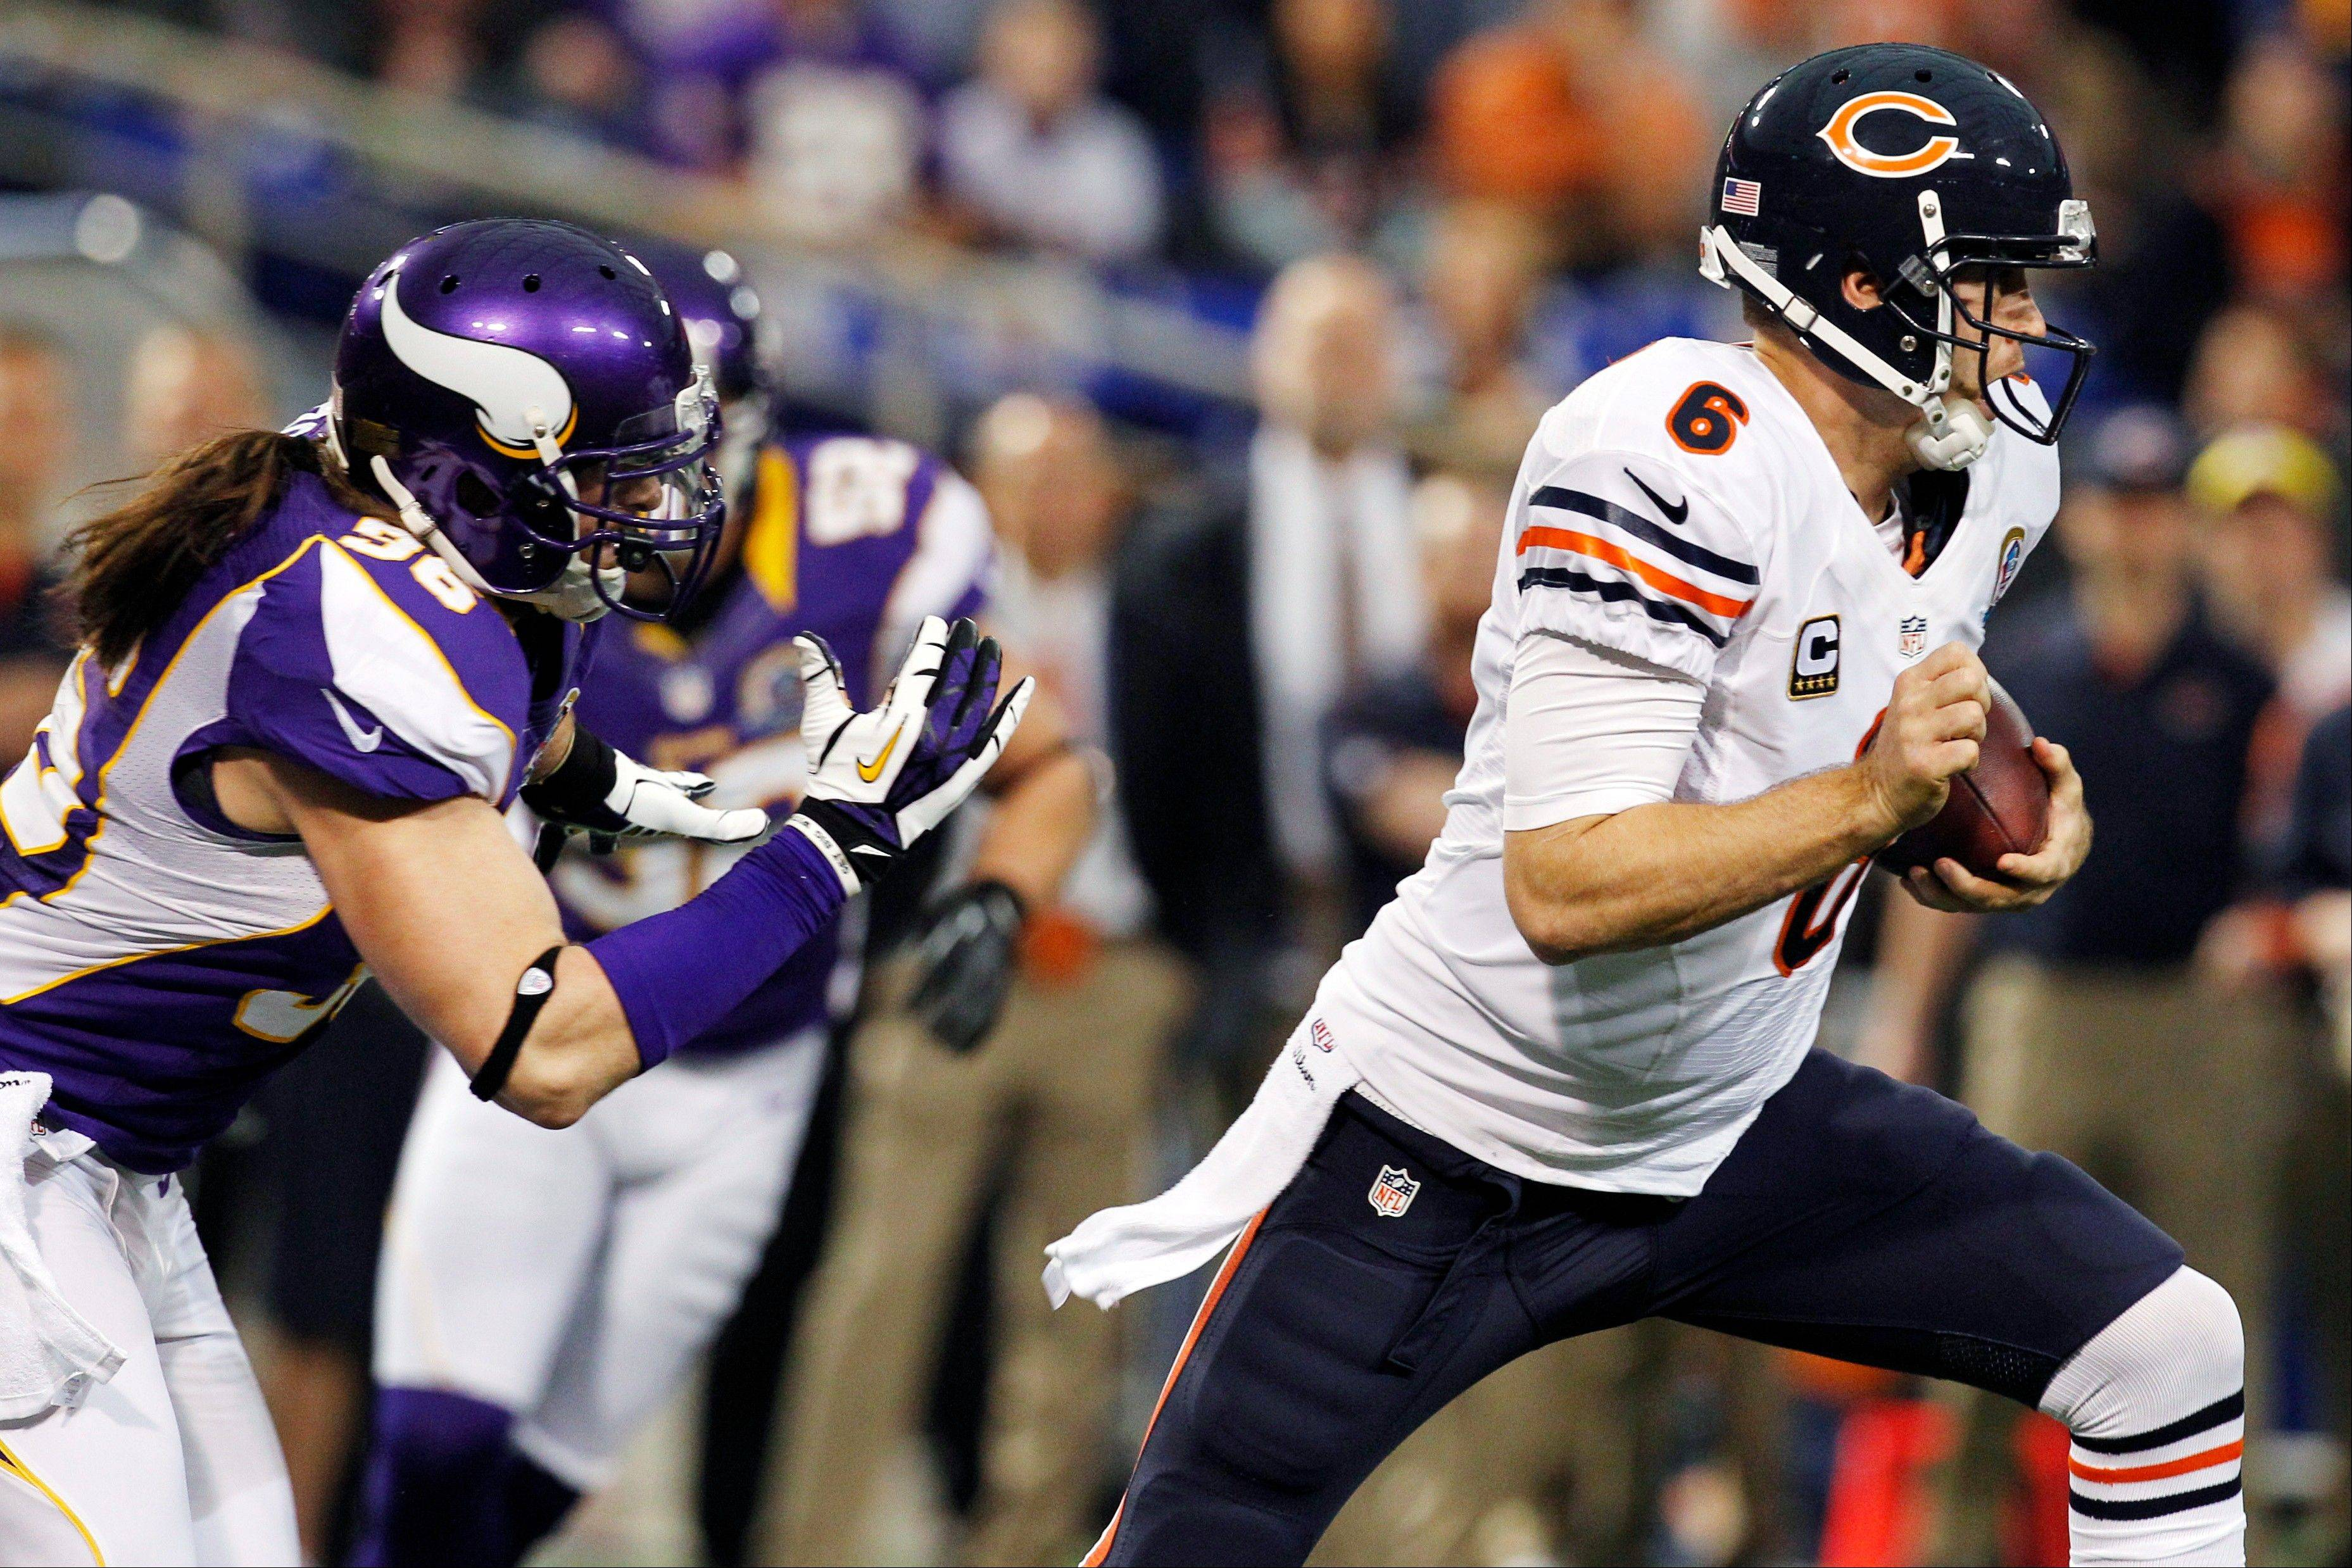 On the run for much of the Minnesota game, Bears quarterback Jay Cutler left the contest with an injury after a brutal hit. On his Chicago radio show Monday, Cutler said he expects to play against the Green Bay Packers on Sunday.